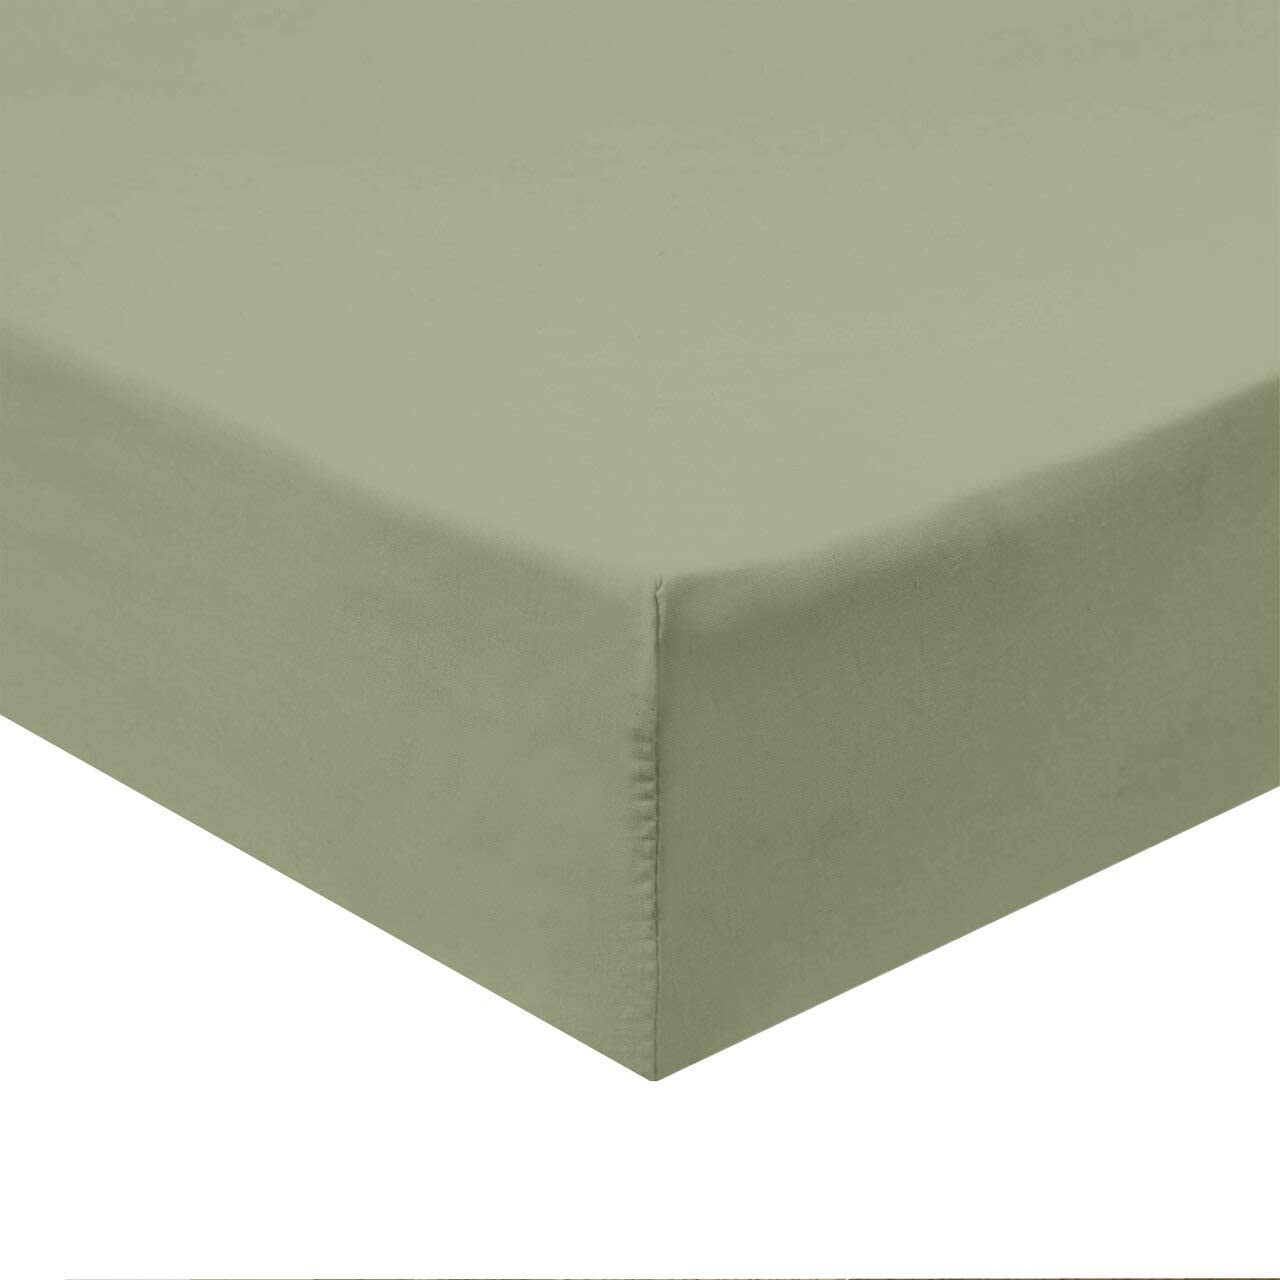 Wrinkle Free Fitted-Sheet White Top-Split-King : Adjustable Split Top King 650 Thread Count 100/% Cotton-Poly Blend Fitted Royal Bedding Silky Soft Cotton Blend Fitted Sheet